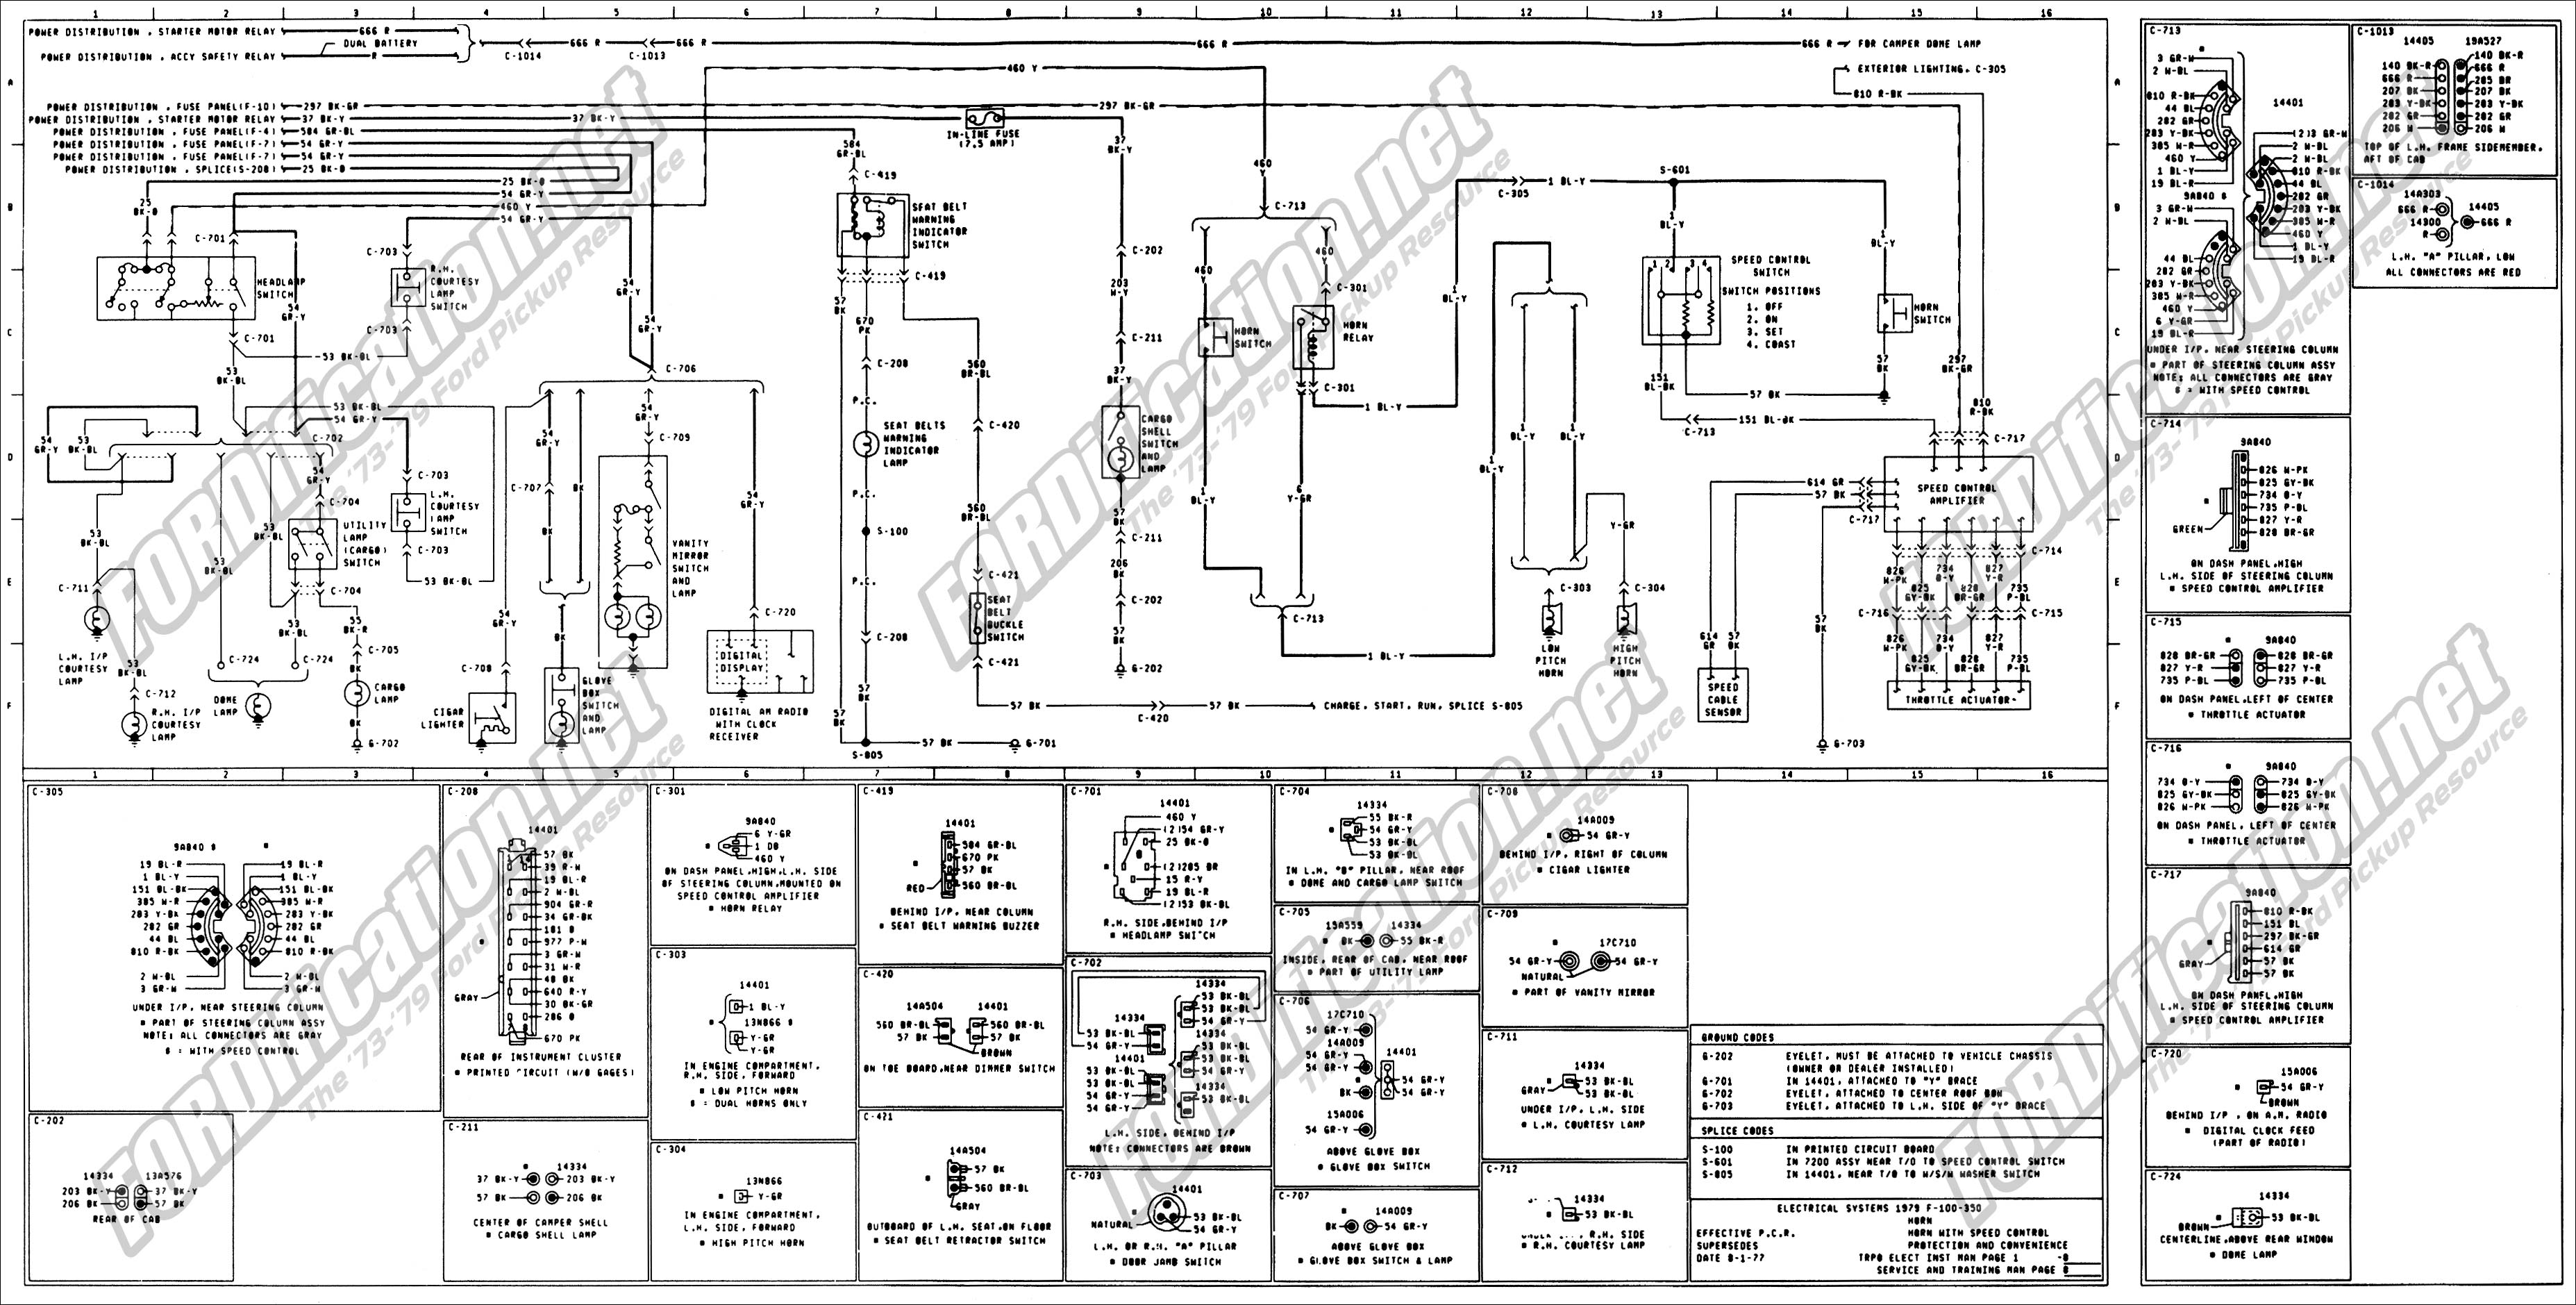 2001 ford f150 headlight wiring diagram 7 wire 1973 1979 truck diagrams schematics fordification net